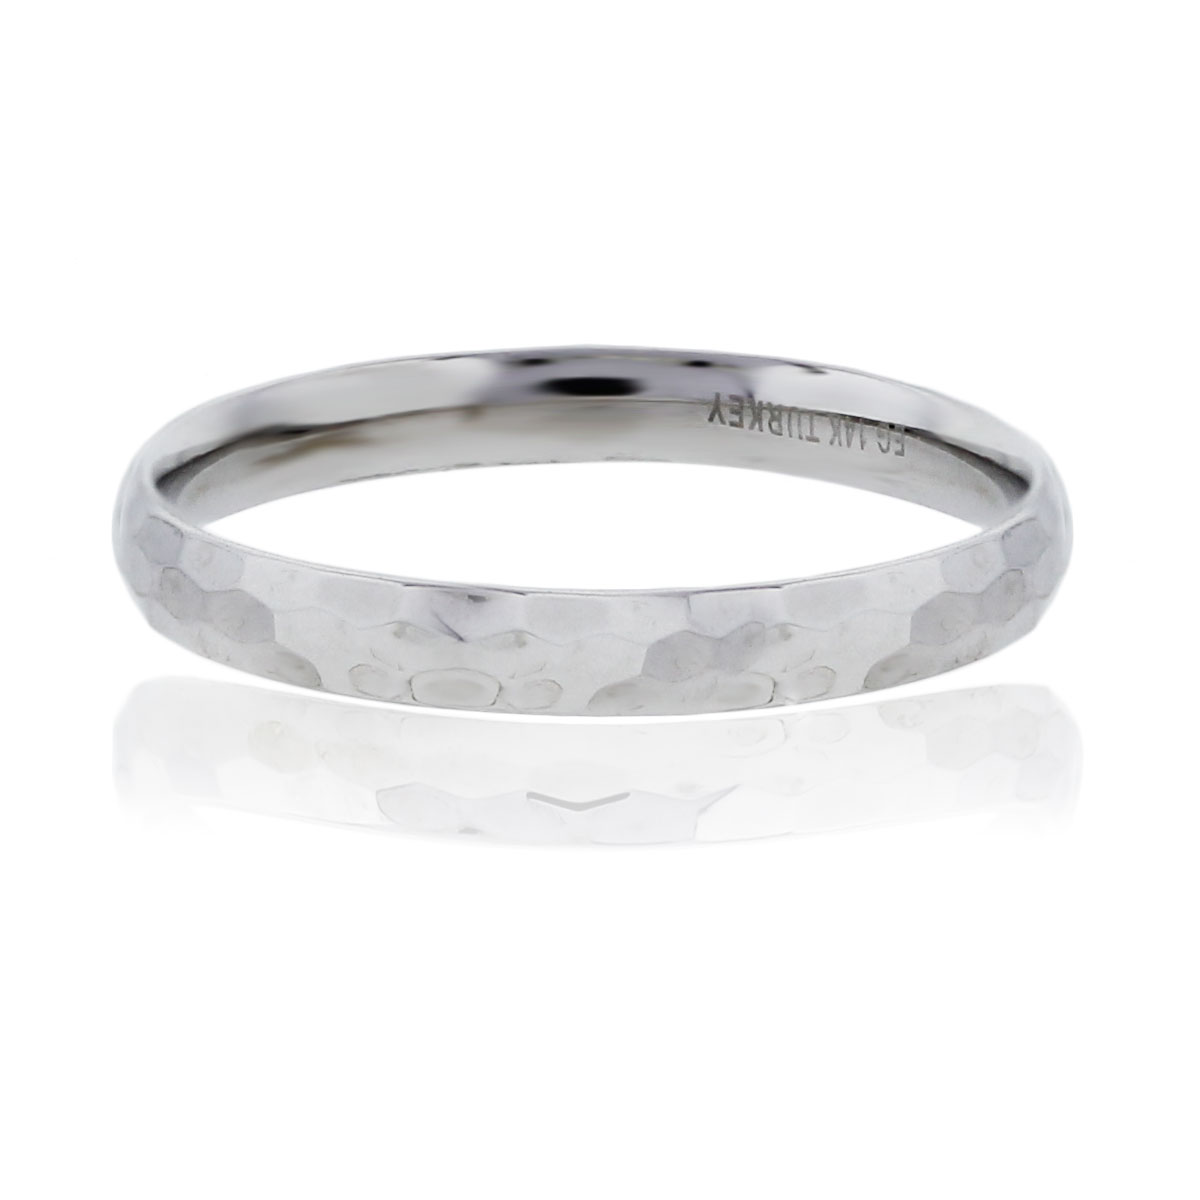 You are viewing this 14k White Gold Handmade Hammered Wedding Band Men's Ring!